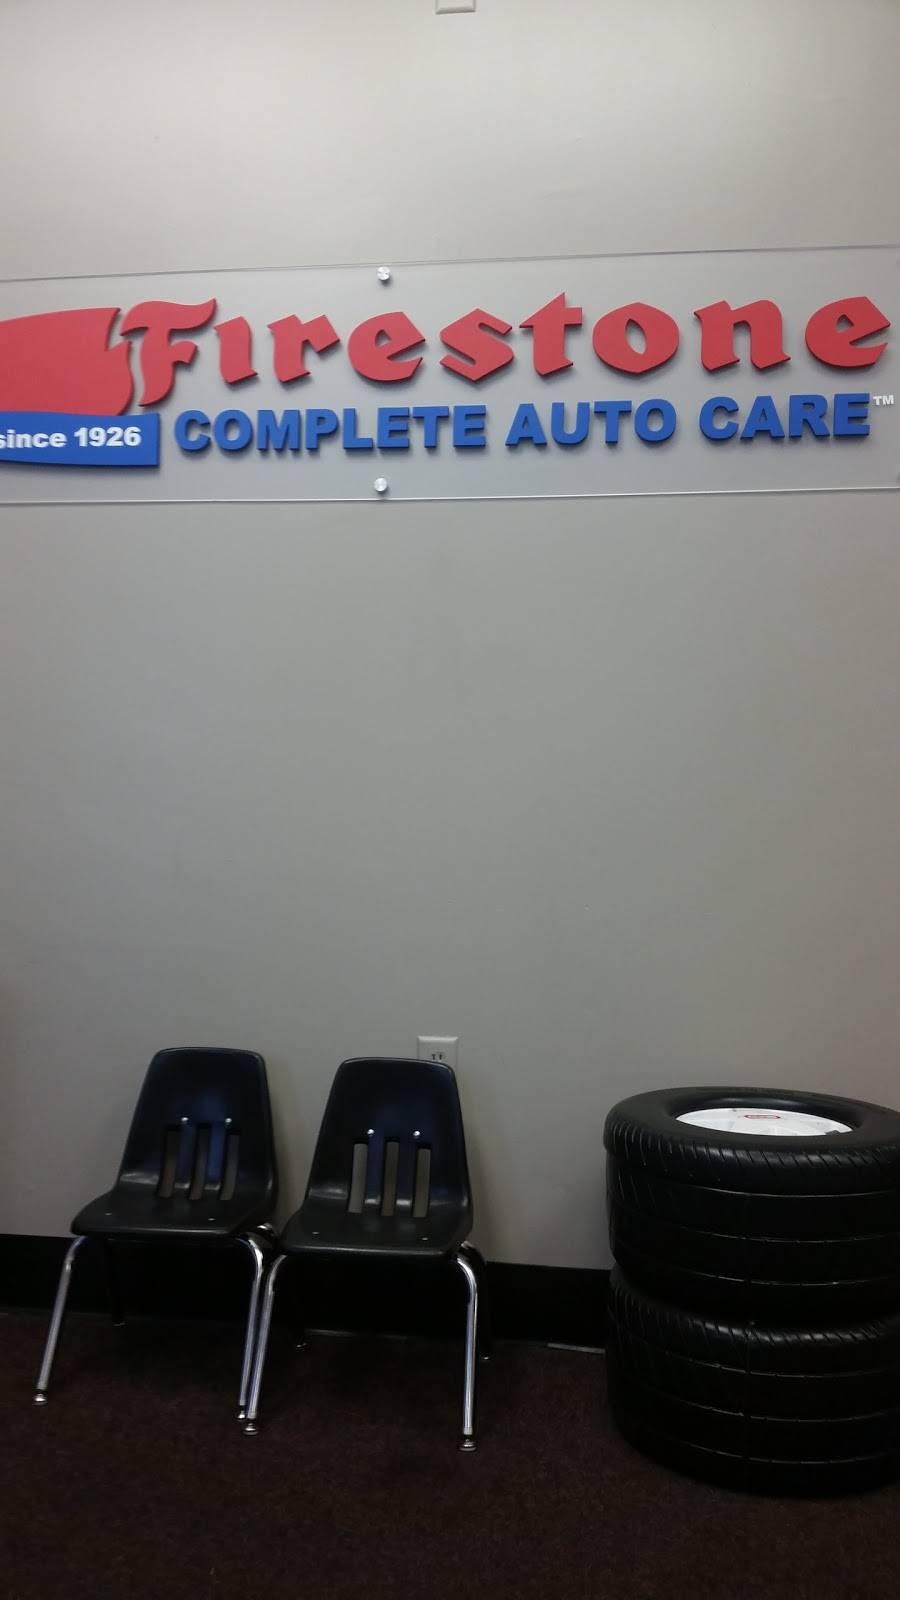 Firestone Complete Auto Care - car repair  | Photo 4 of 7 | Address: 953 Chimney Hill Shp Ctr, Virginia Beach, VA 23452, USA | Phone: (757) 687-0024